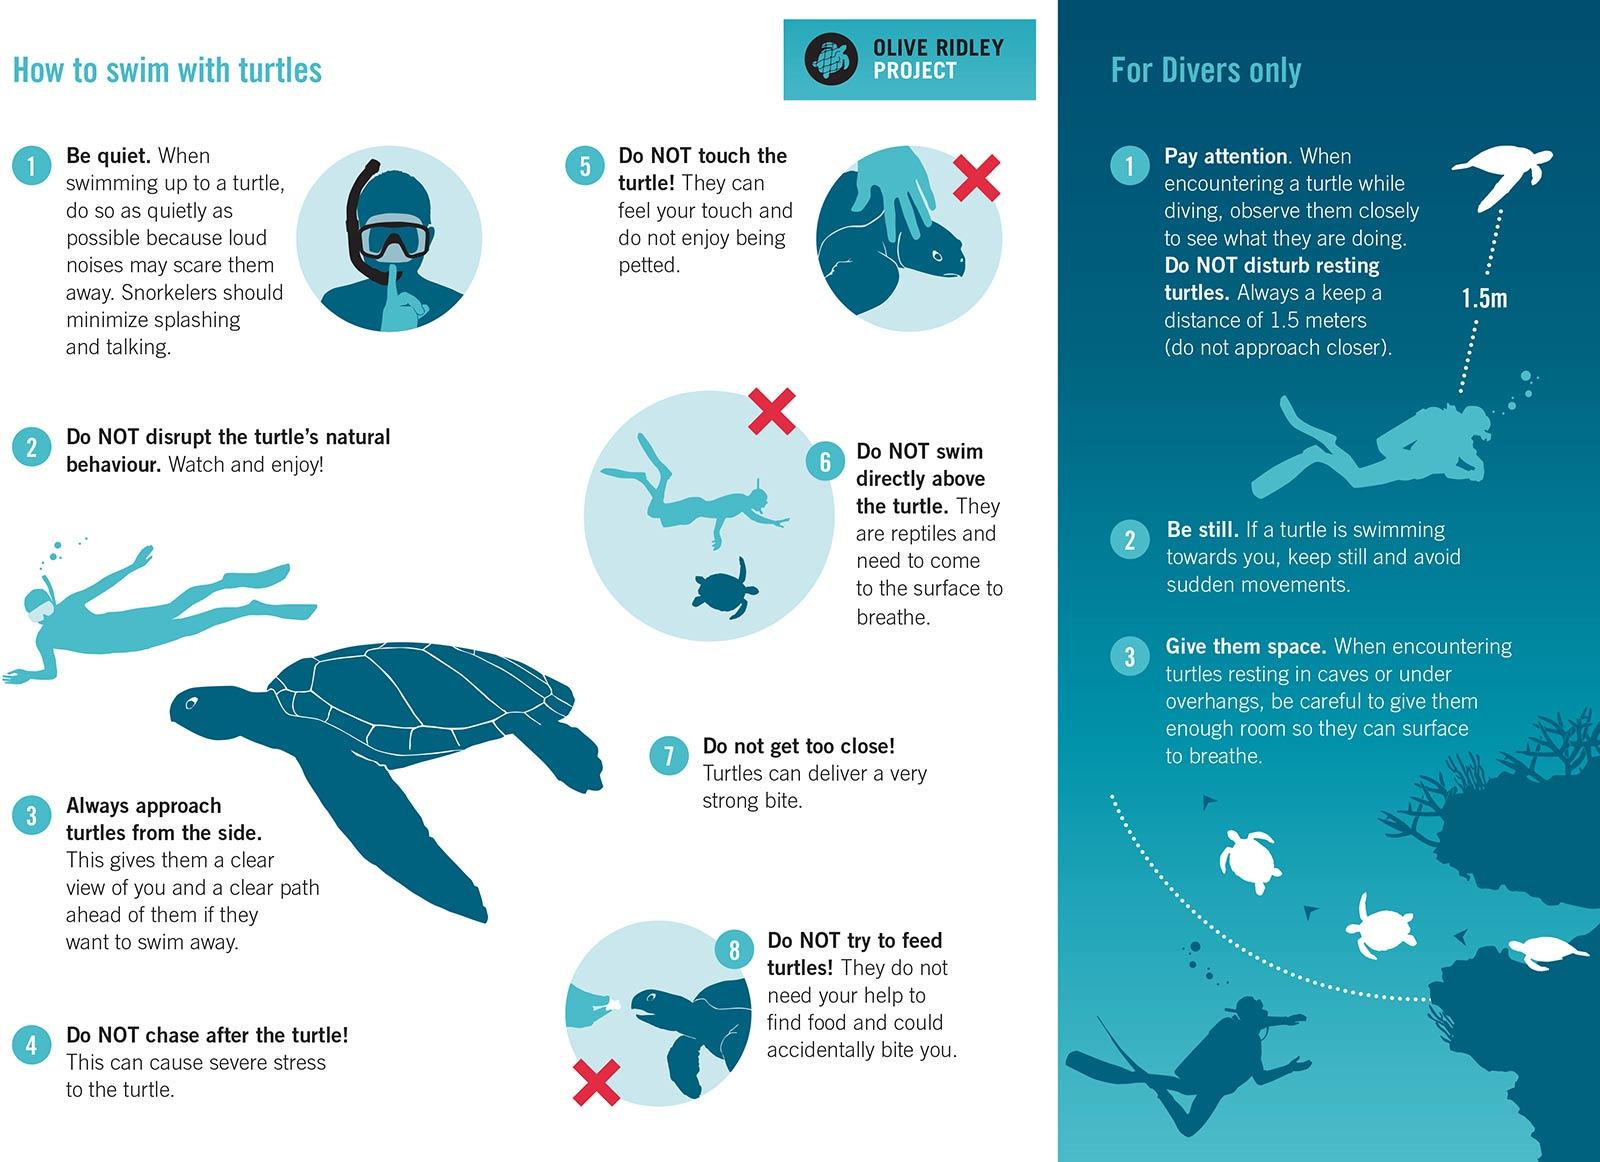 How to Swim with Sea Turtles